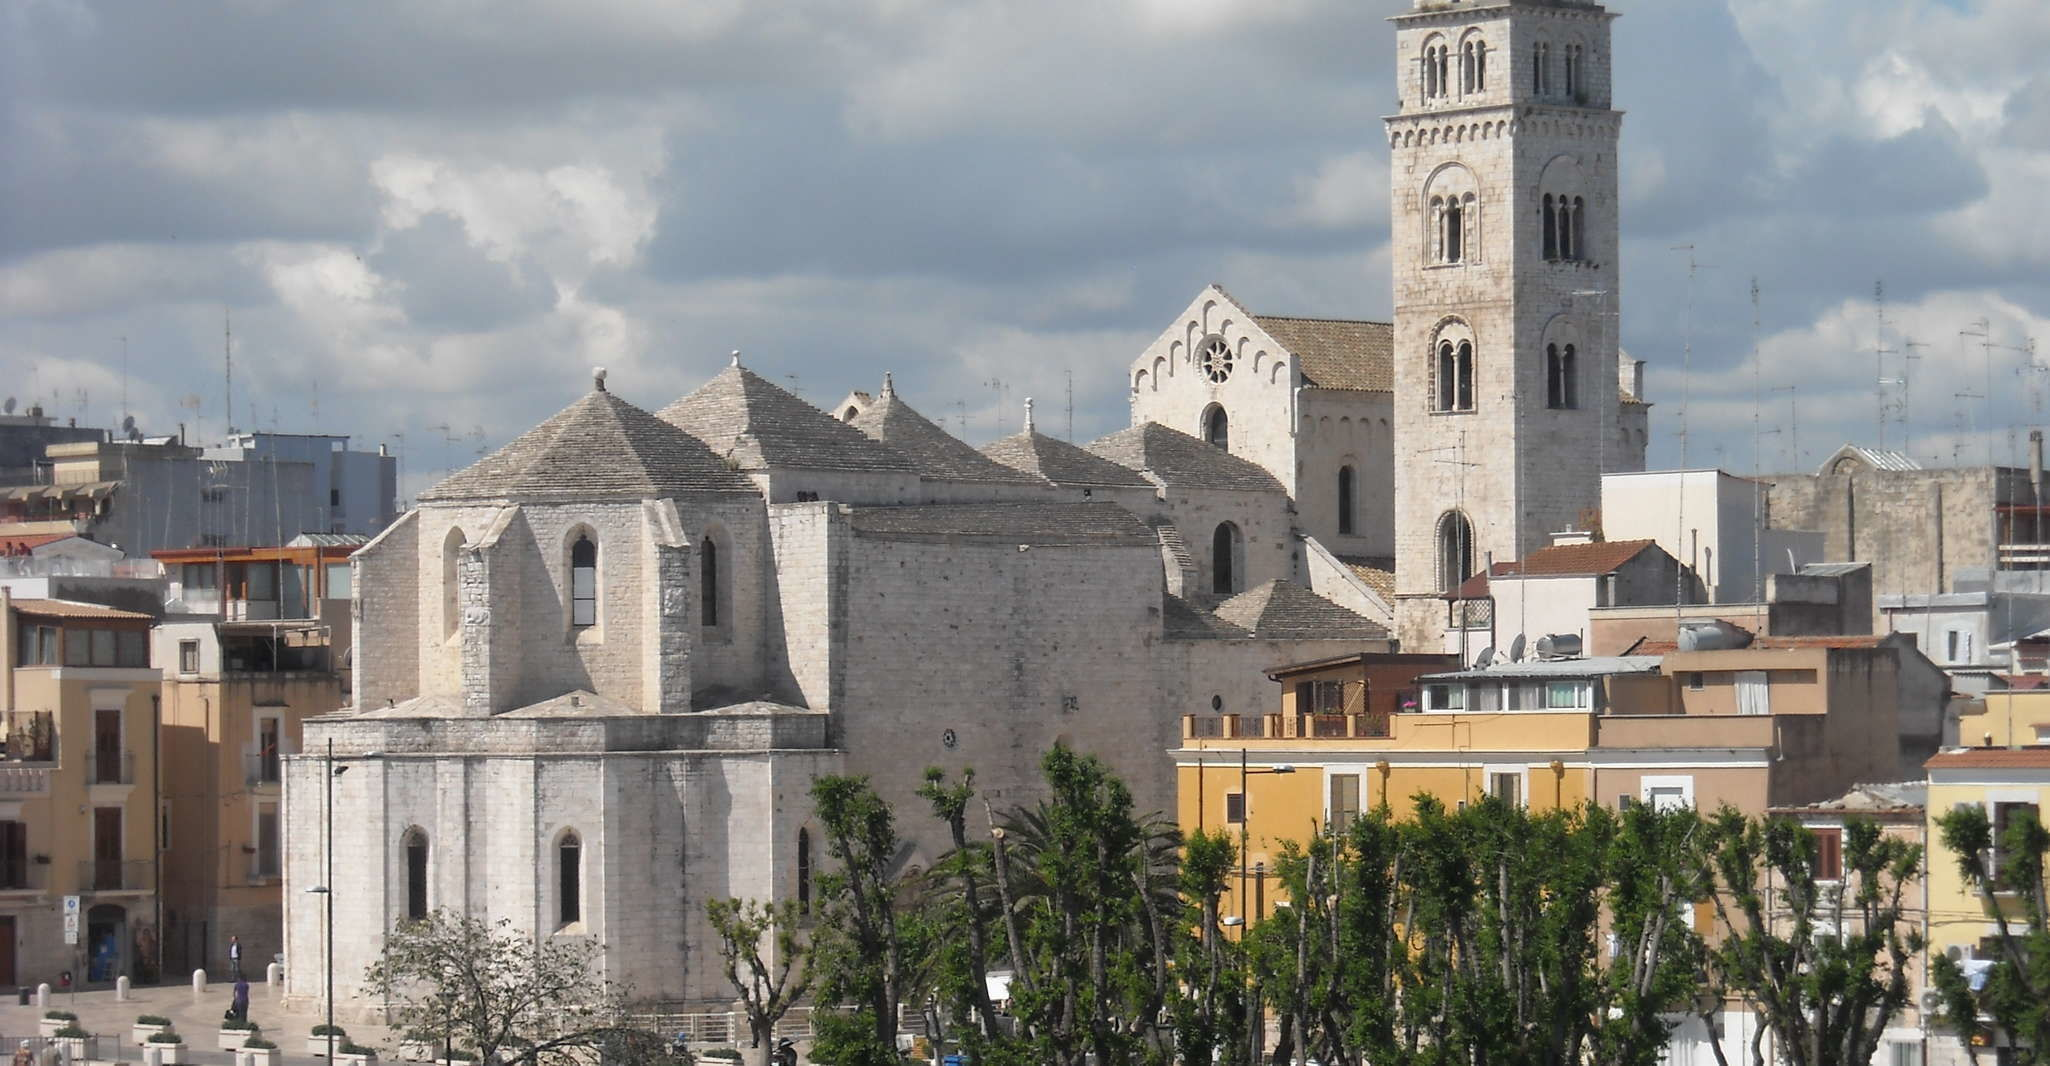 Barletta: The Town of the Challenge Private Tour